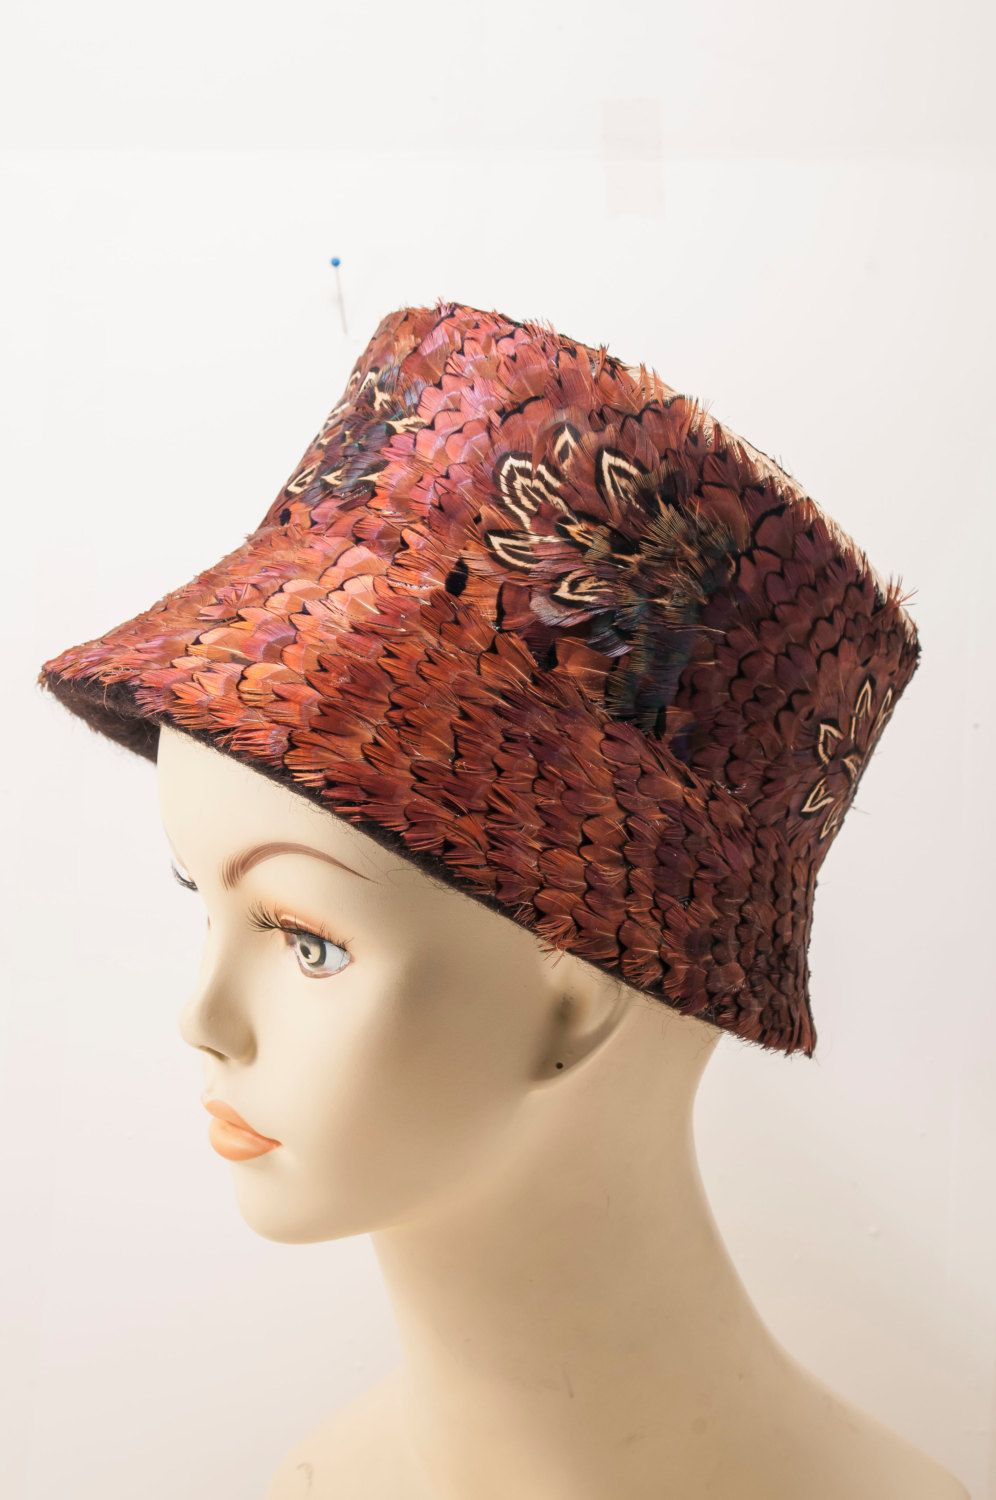 How to clean pheasant feathers - Ladies Fancy Bucket Pheasant Feather Hat Crisp Clean 1960s